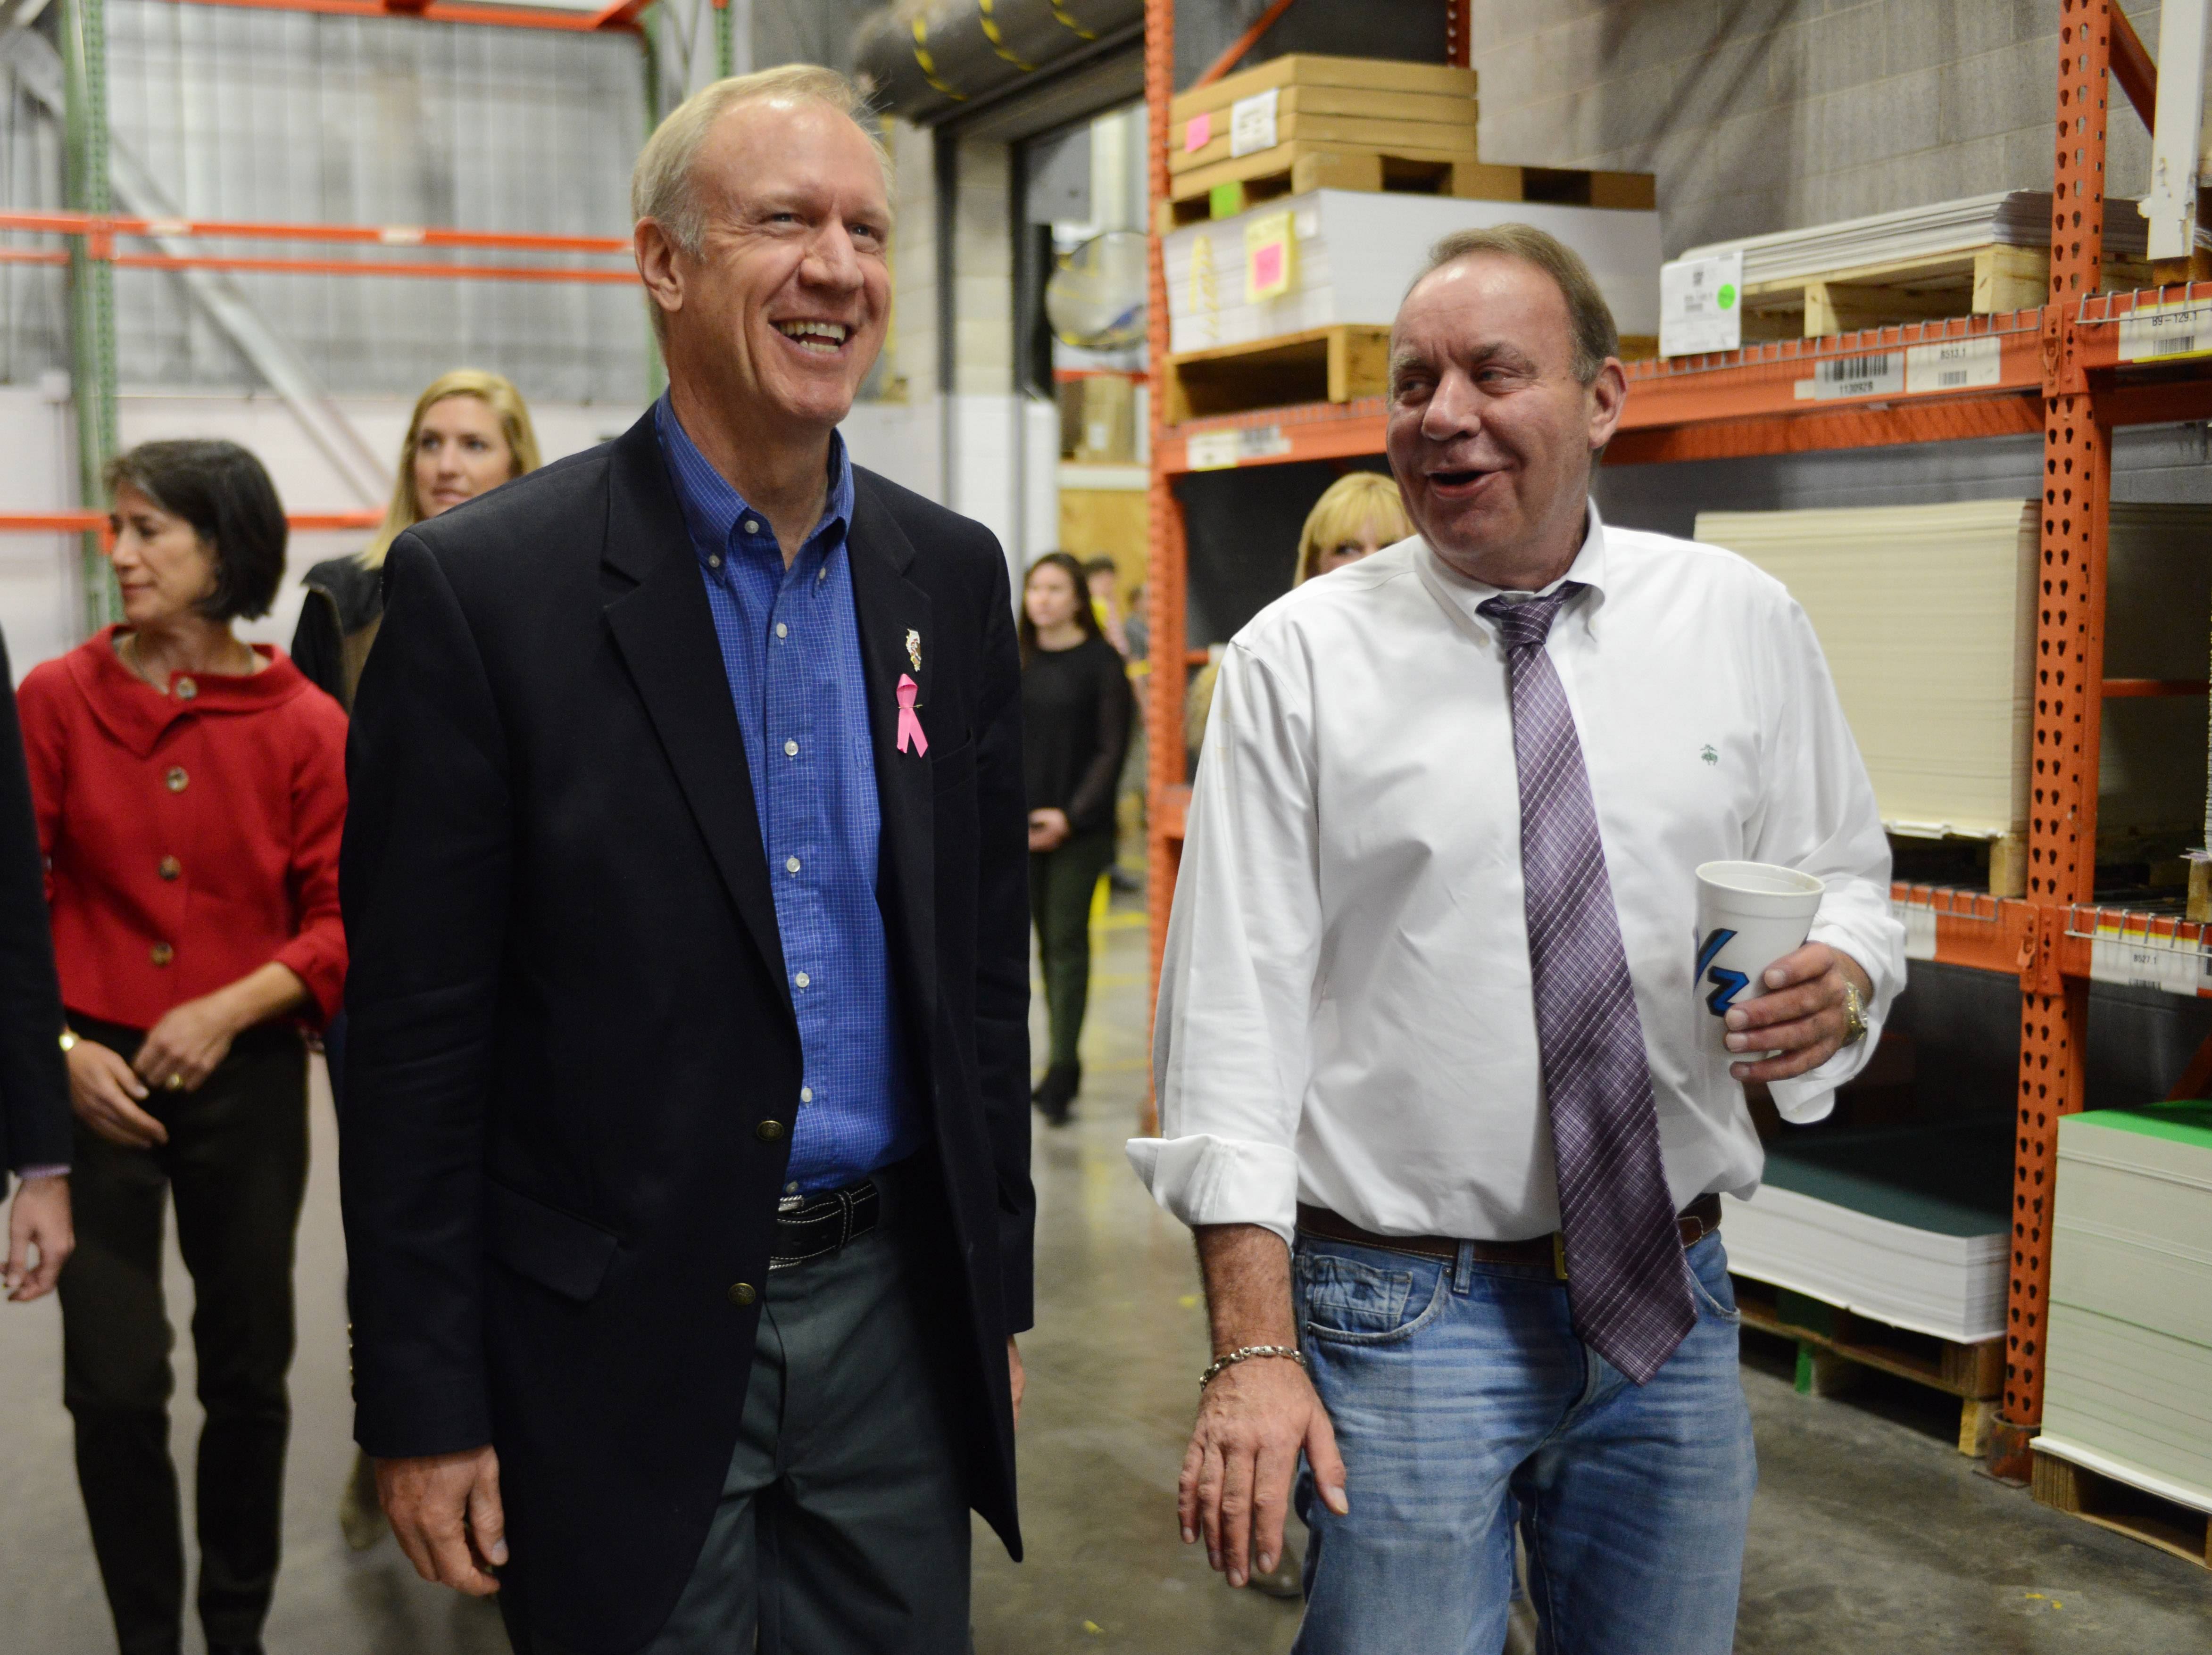 Business leaders look forward to Rauner administration